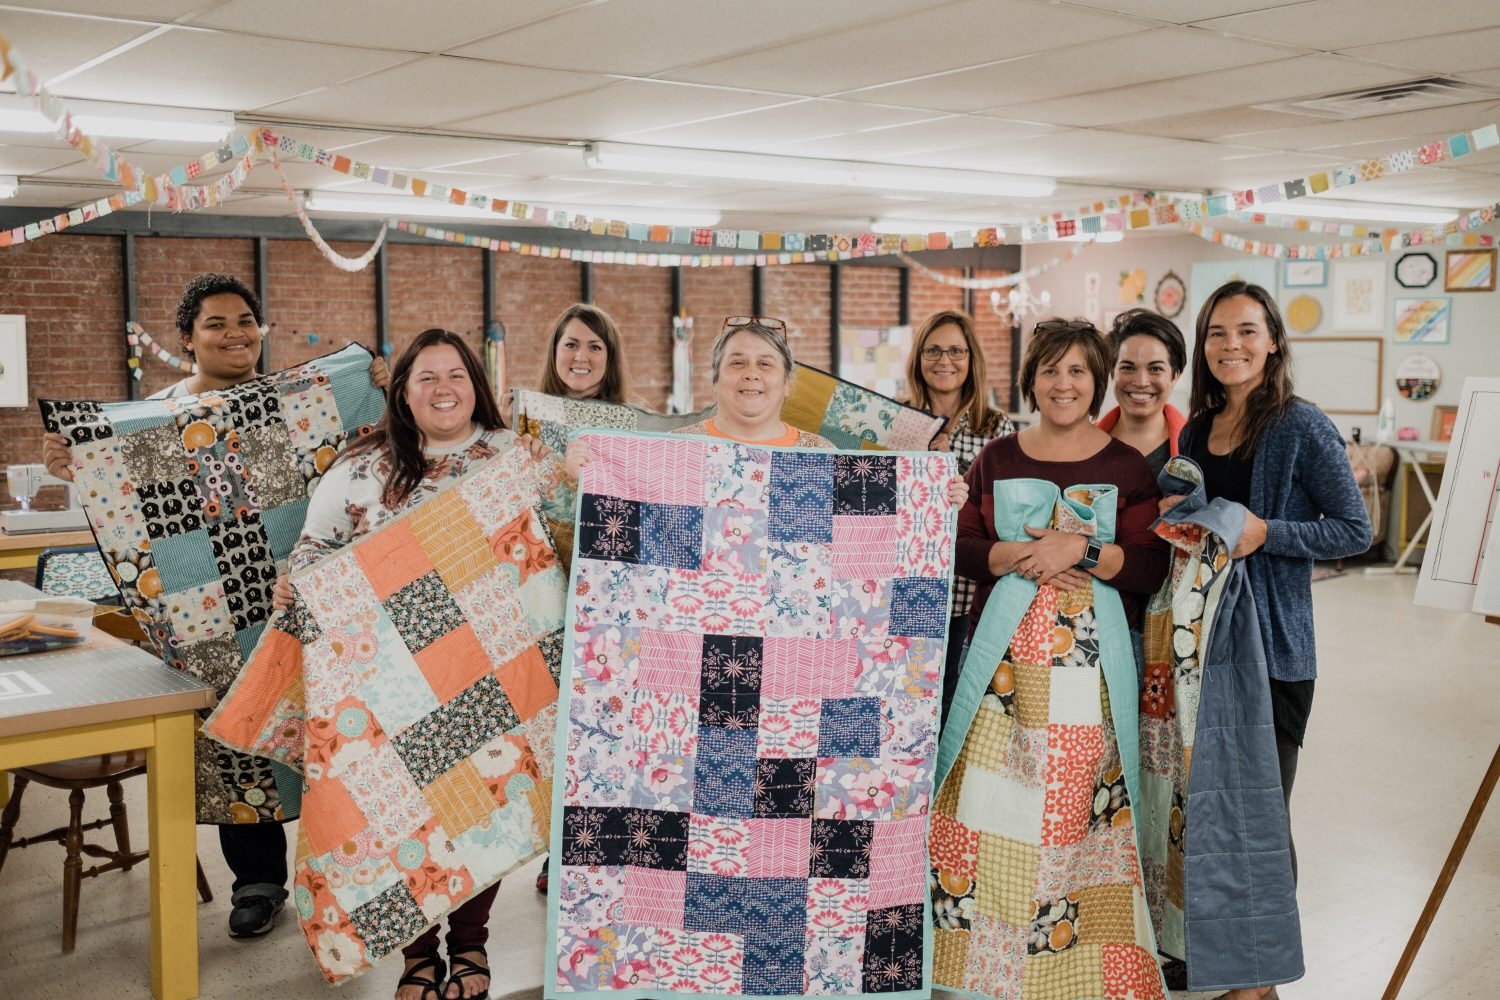 learn how to quilt at Make.Do